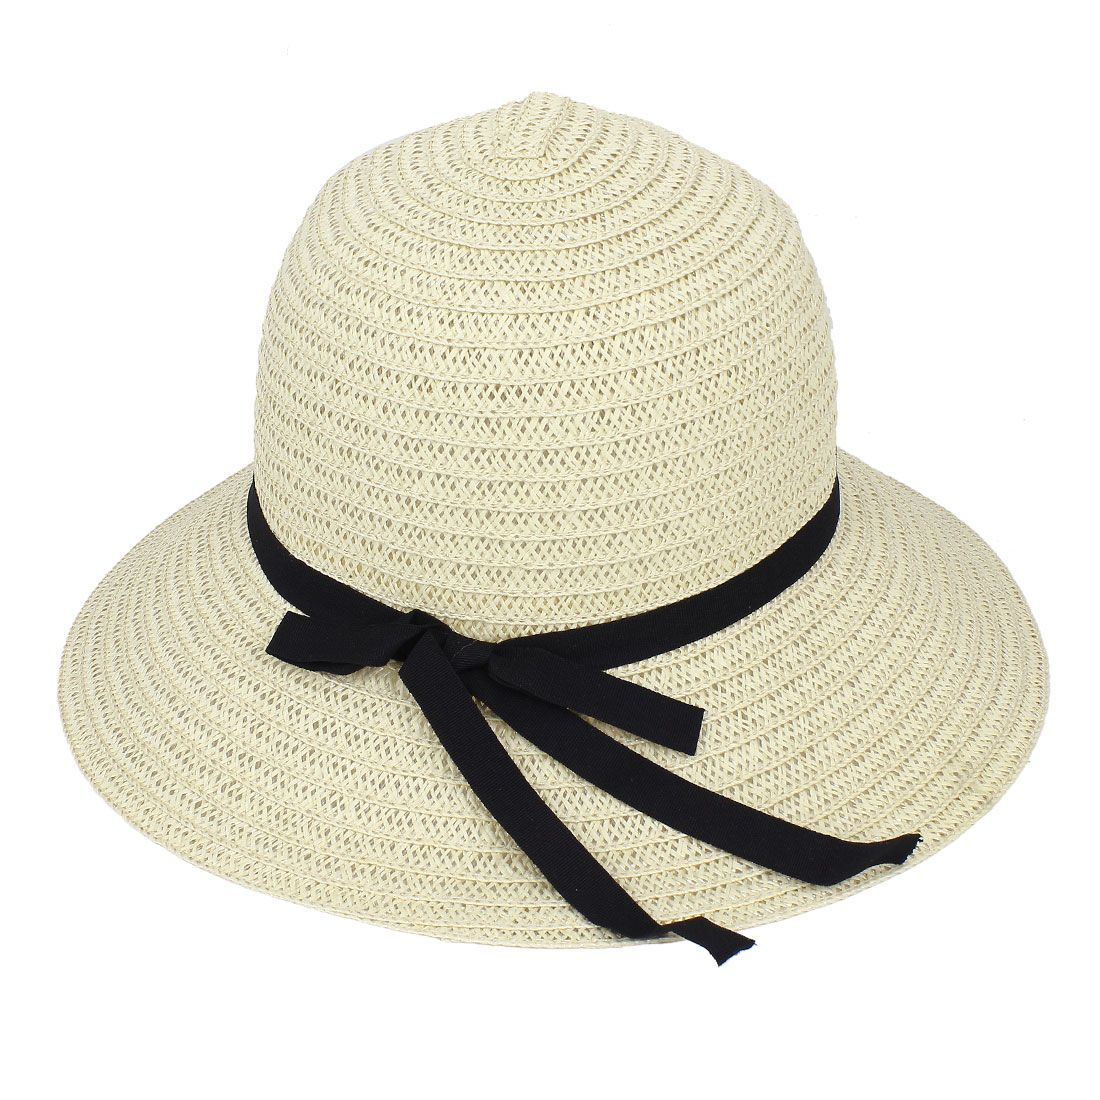 Ladies Straw Braided Sun Visor Bowtie Ornament Floppy Beach Hat Cap